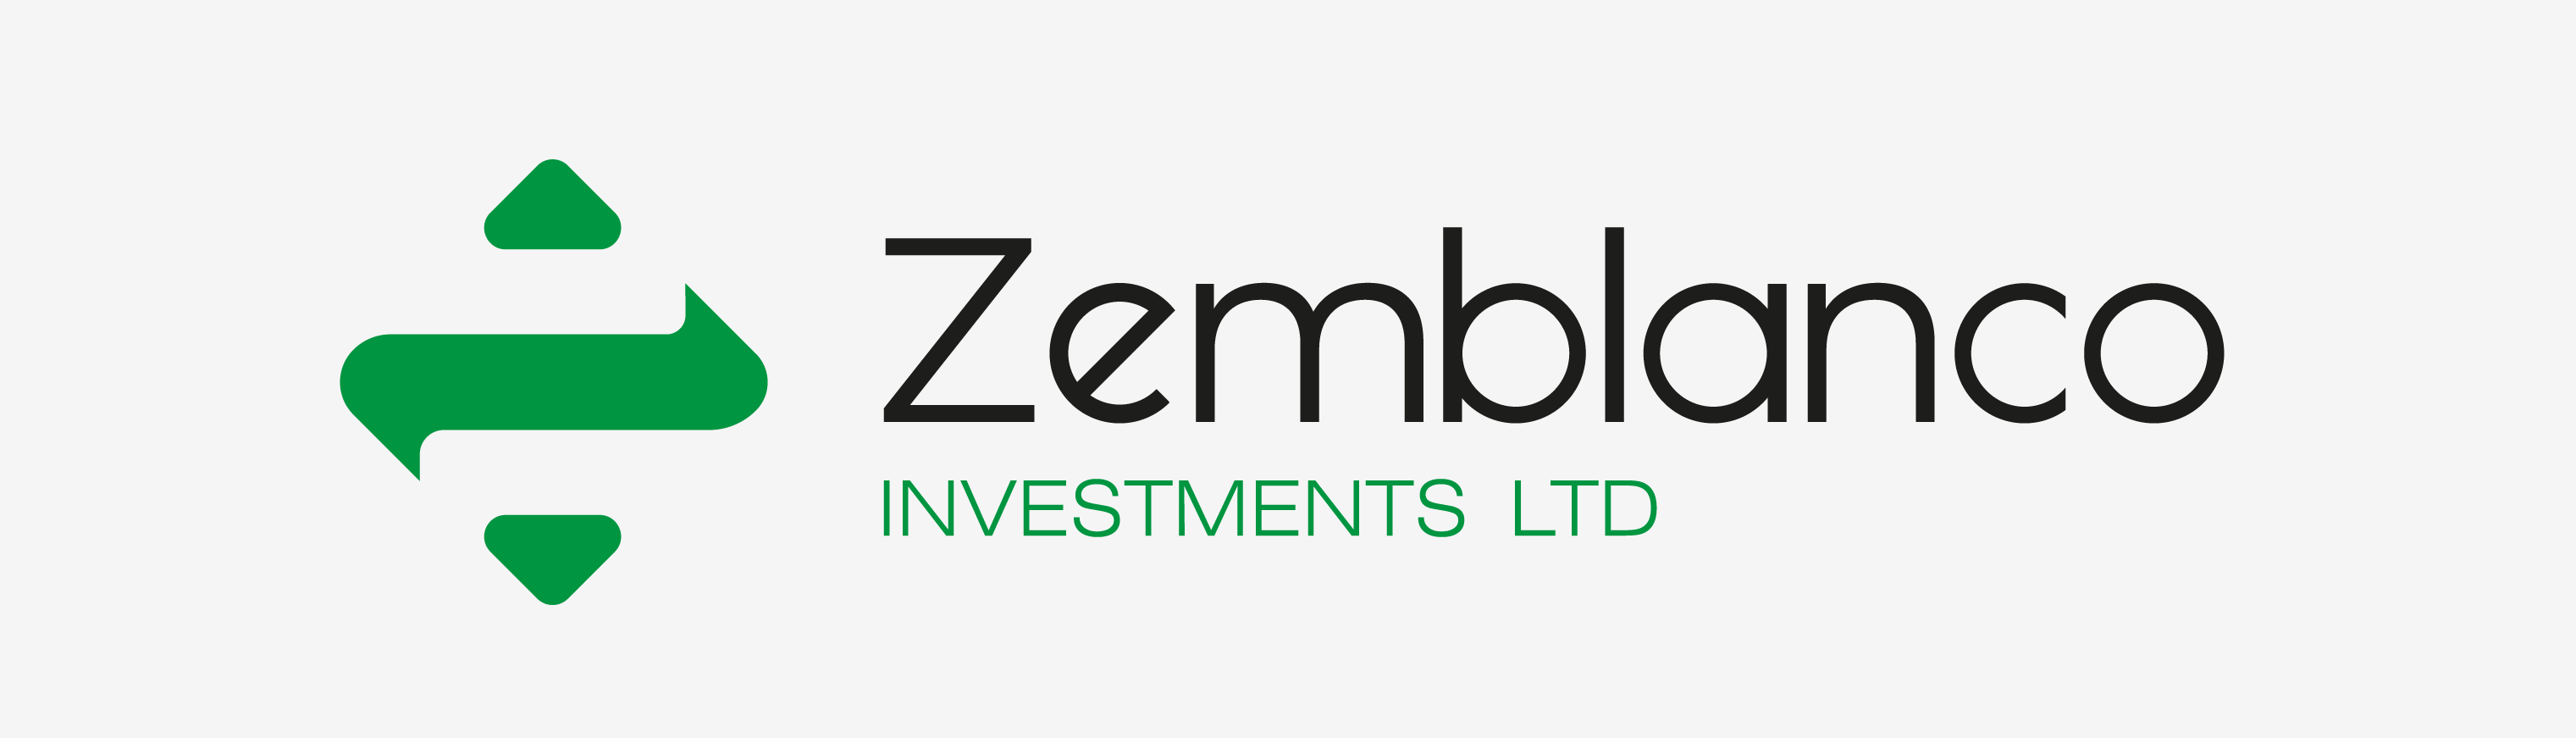 Zemblanco Investments Ltd.